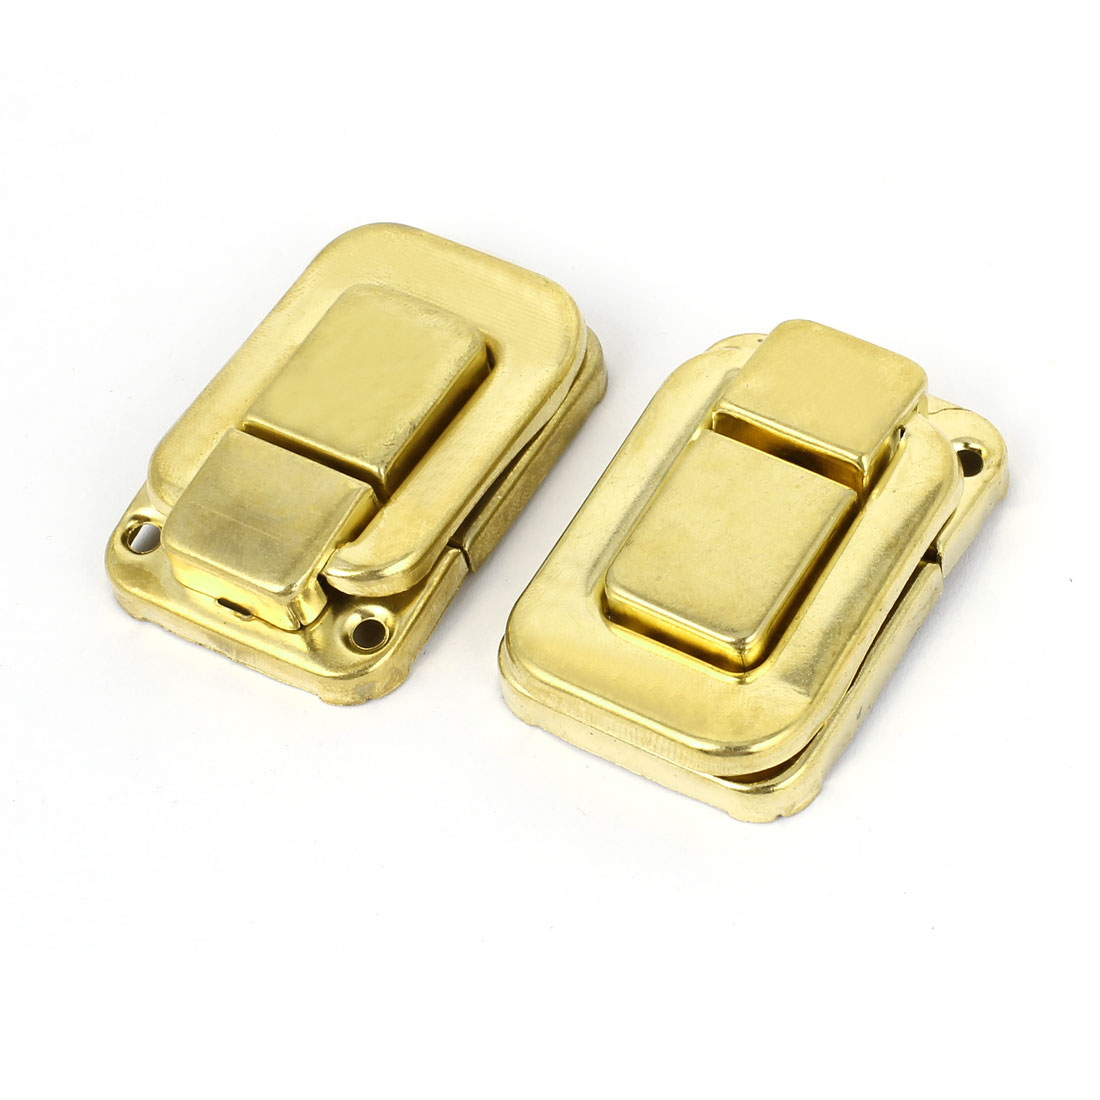 2 Pcs Necklace Box Case Lock Hook Hinge Latch Hasp Sets Gold Tone w Screws